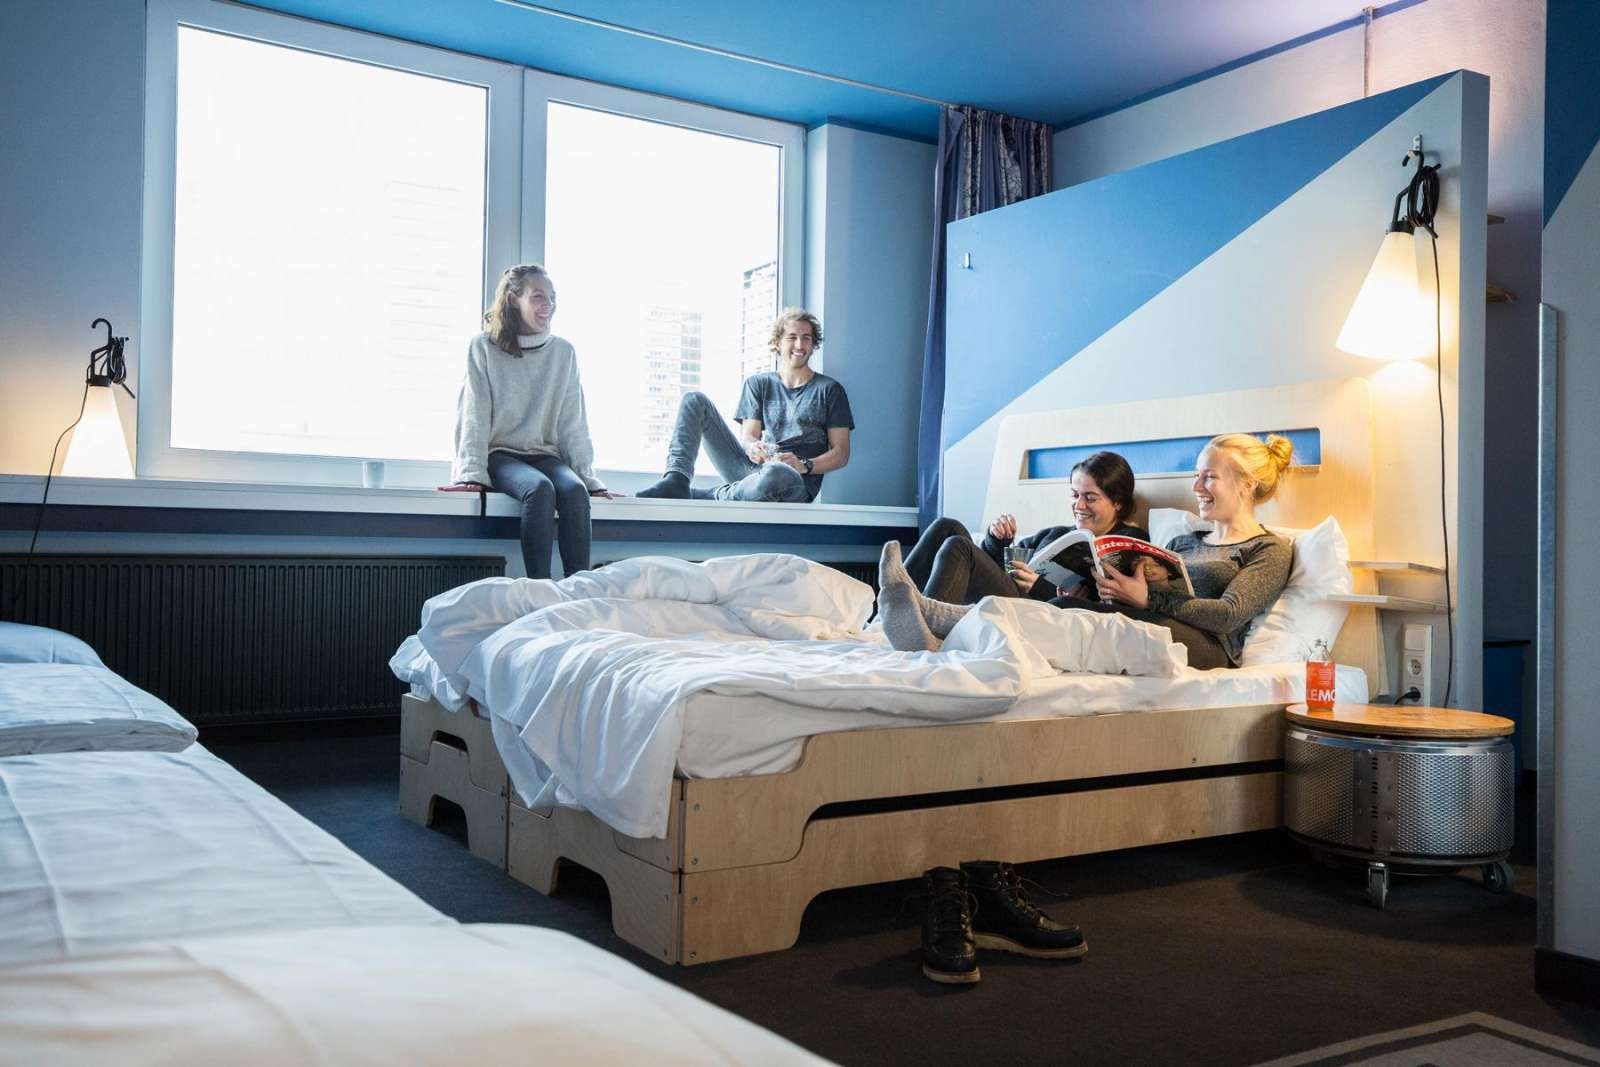 Lifestyle Superbude Hotel Hostel Hamburg 21